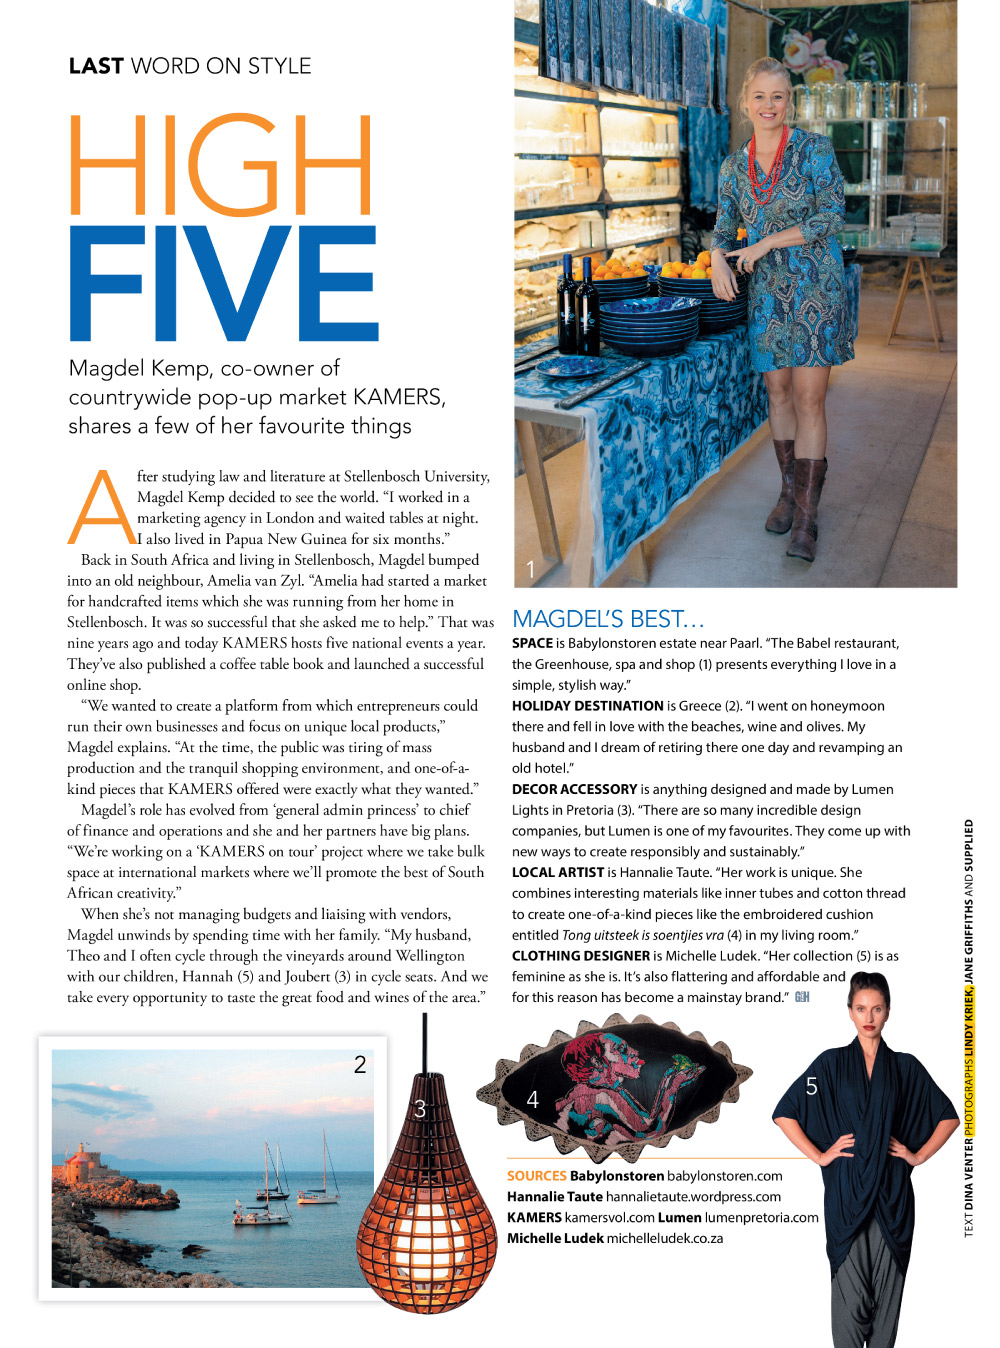 KAMERS co-owner Magdel Kemp featured in Garden & Home August 2016